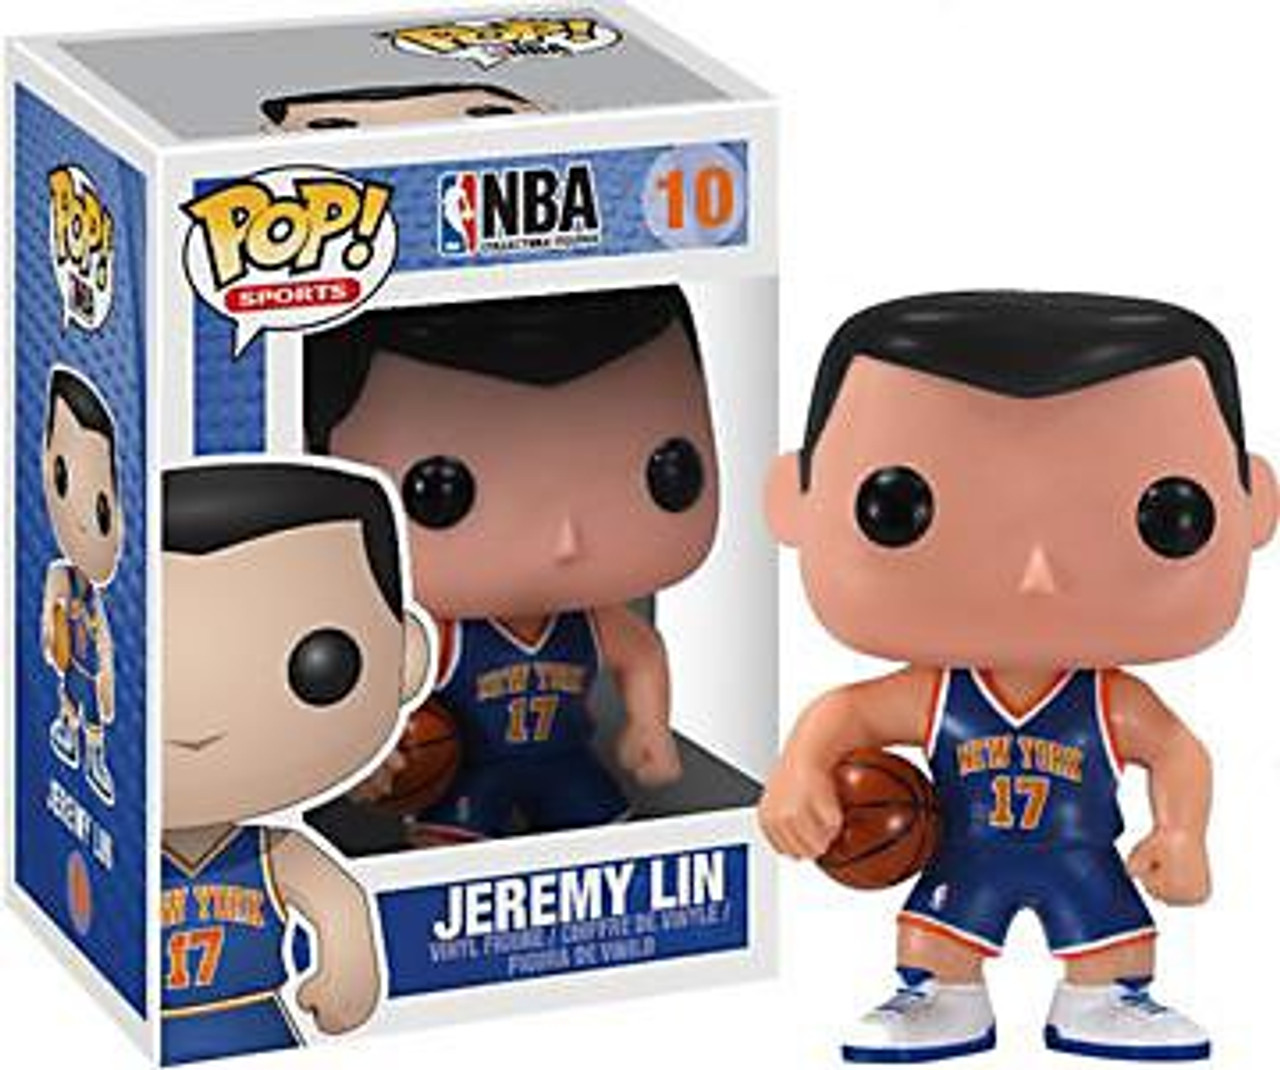 NBA Funko POP! Sports Jeremy Lin Vinyl Figure #10